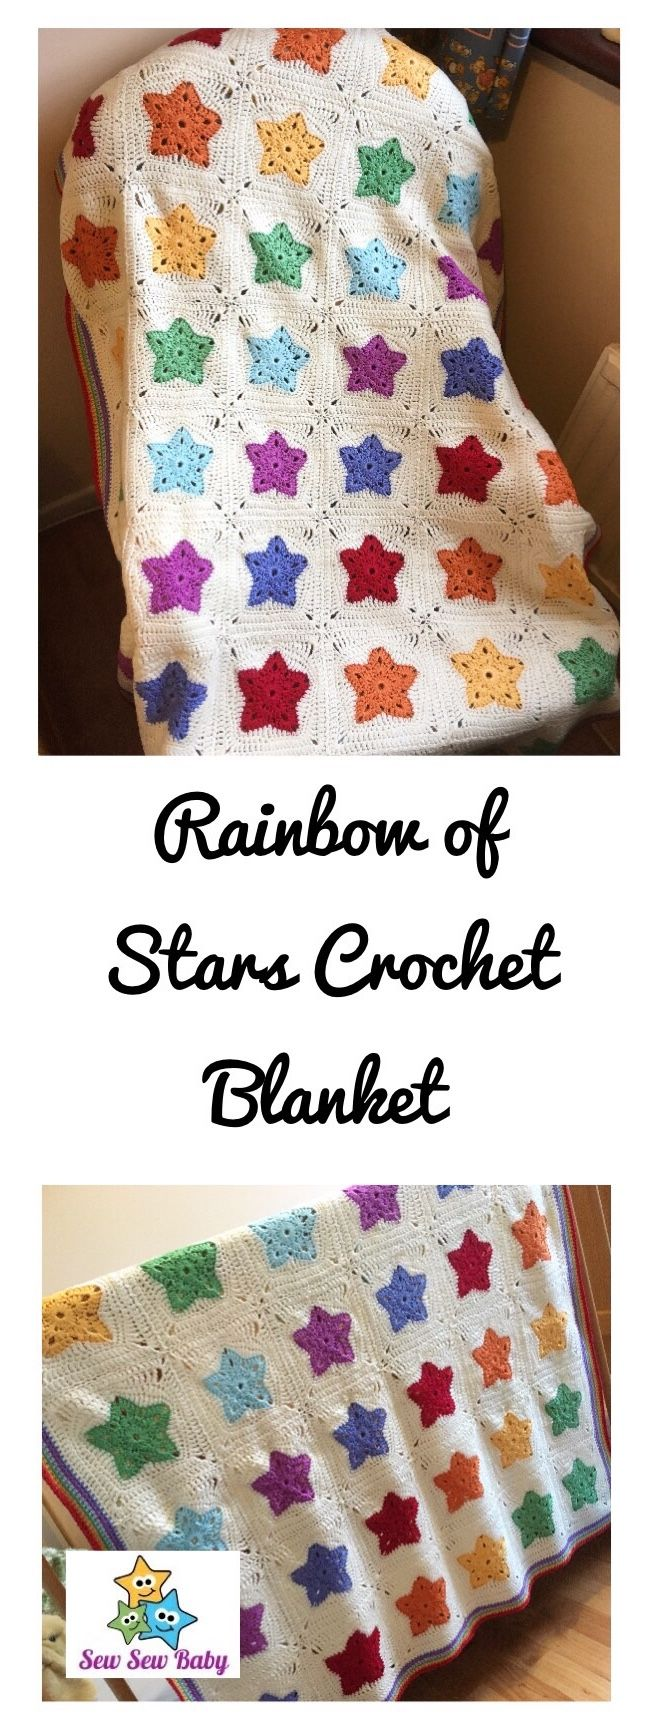 922 best Crochet images on Pinterest | Crochet afghans, Crochet ...